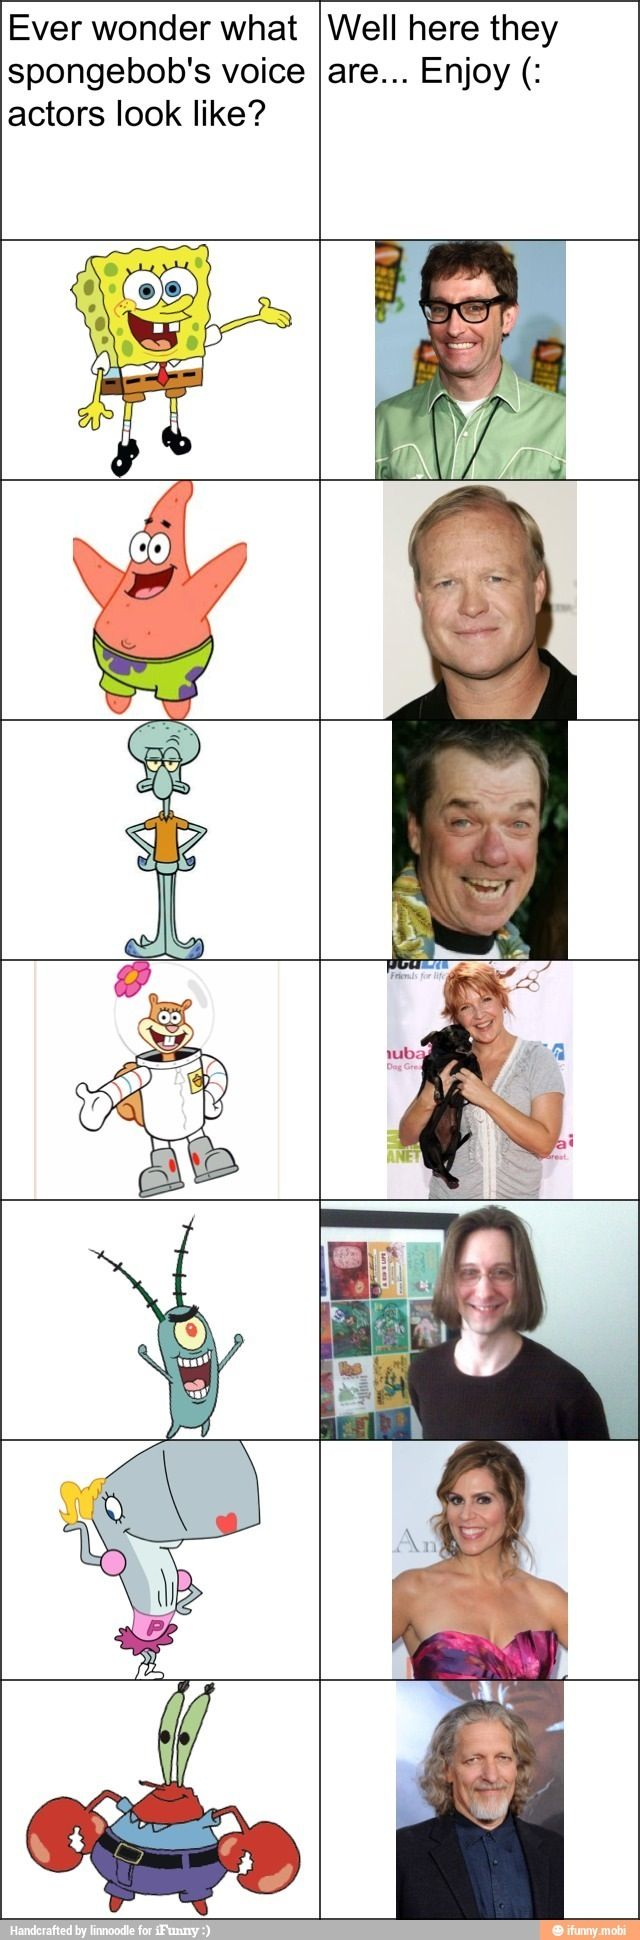 Spongebob- Tom Kenny, Patrick- Bill Fagerbakke, Squidward- Roger Bumpass, Sandy- Carolyn Lawrence, Plankton- Doug Lawrence, Pearl- Lori Alan and Mr Krabs- Clancy Brown.